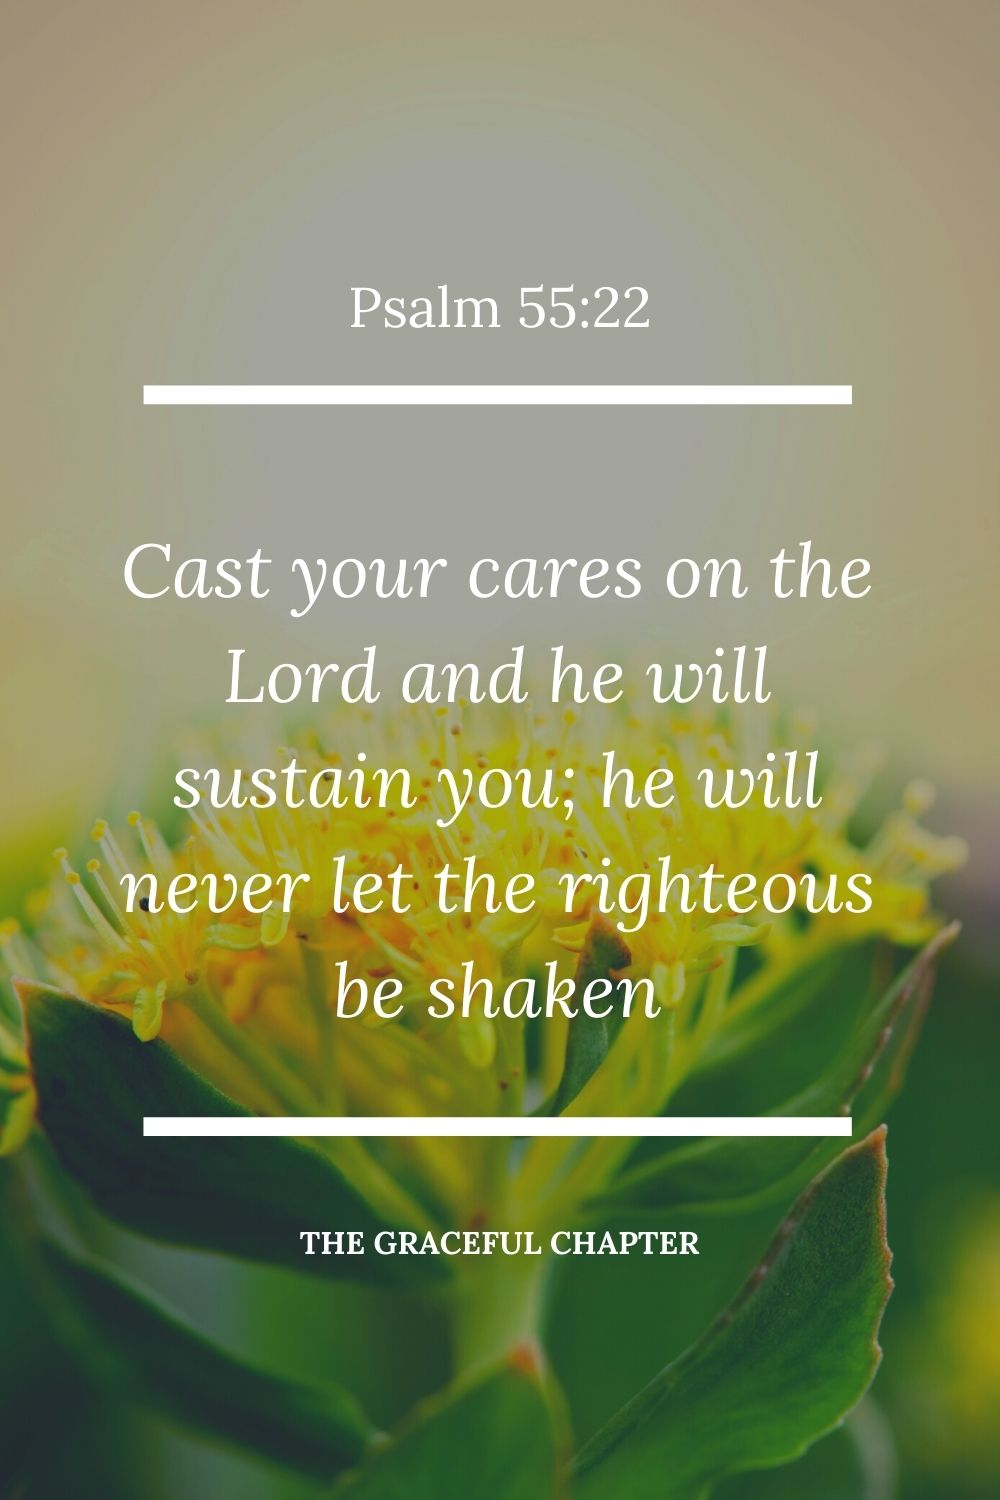 Cast your cares on the Lord  and he will sustain you; he will never let the righteous be shaken Psalm 55:22.